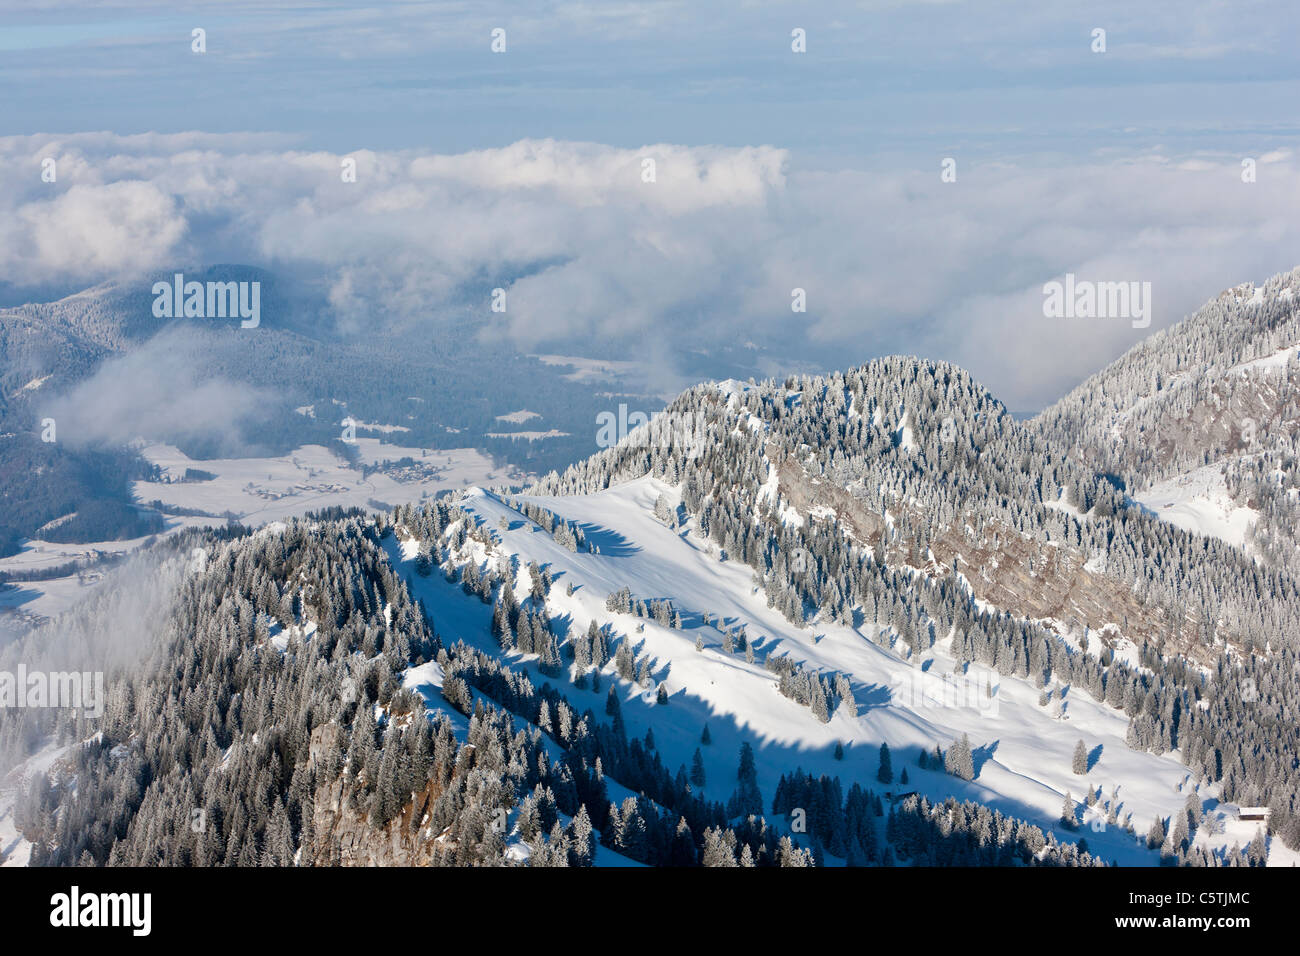 South Germany, Upper Bavaria, Bayrischzell, View of forest from Wendelstein mountain - Stock Image